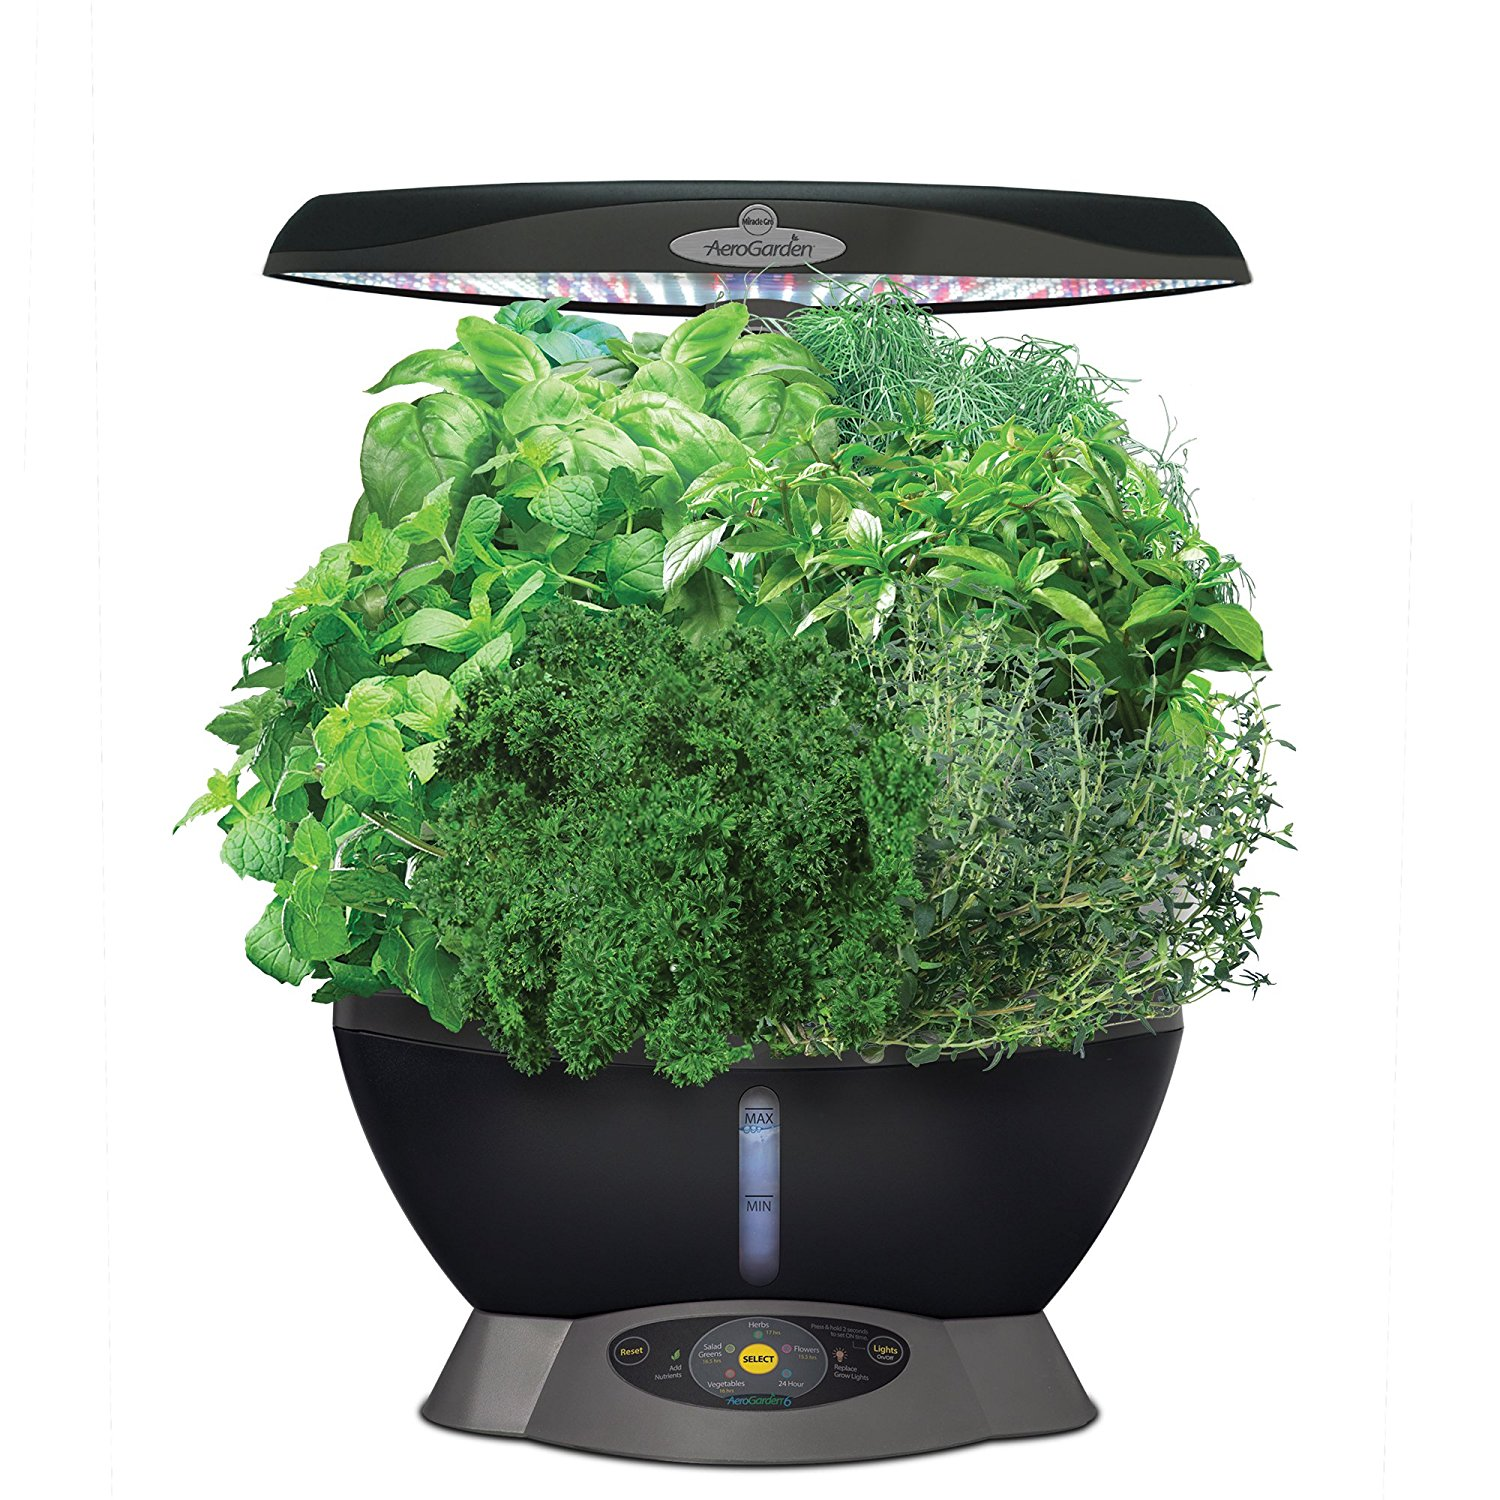 every allows plans lights which led grow technology lighting indoor to